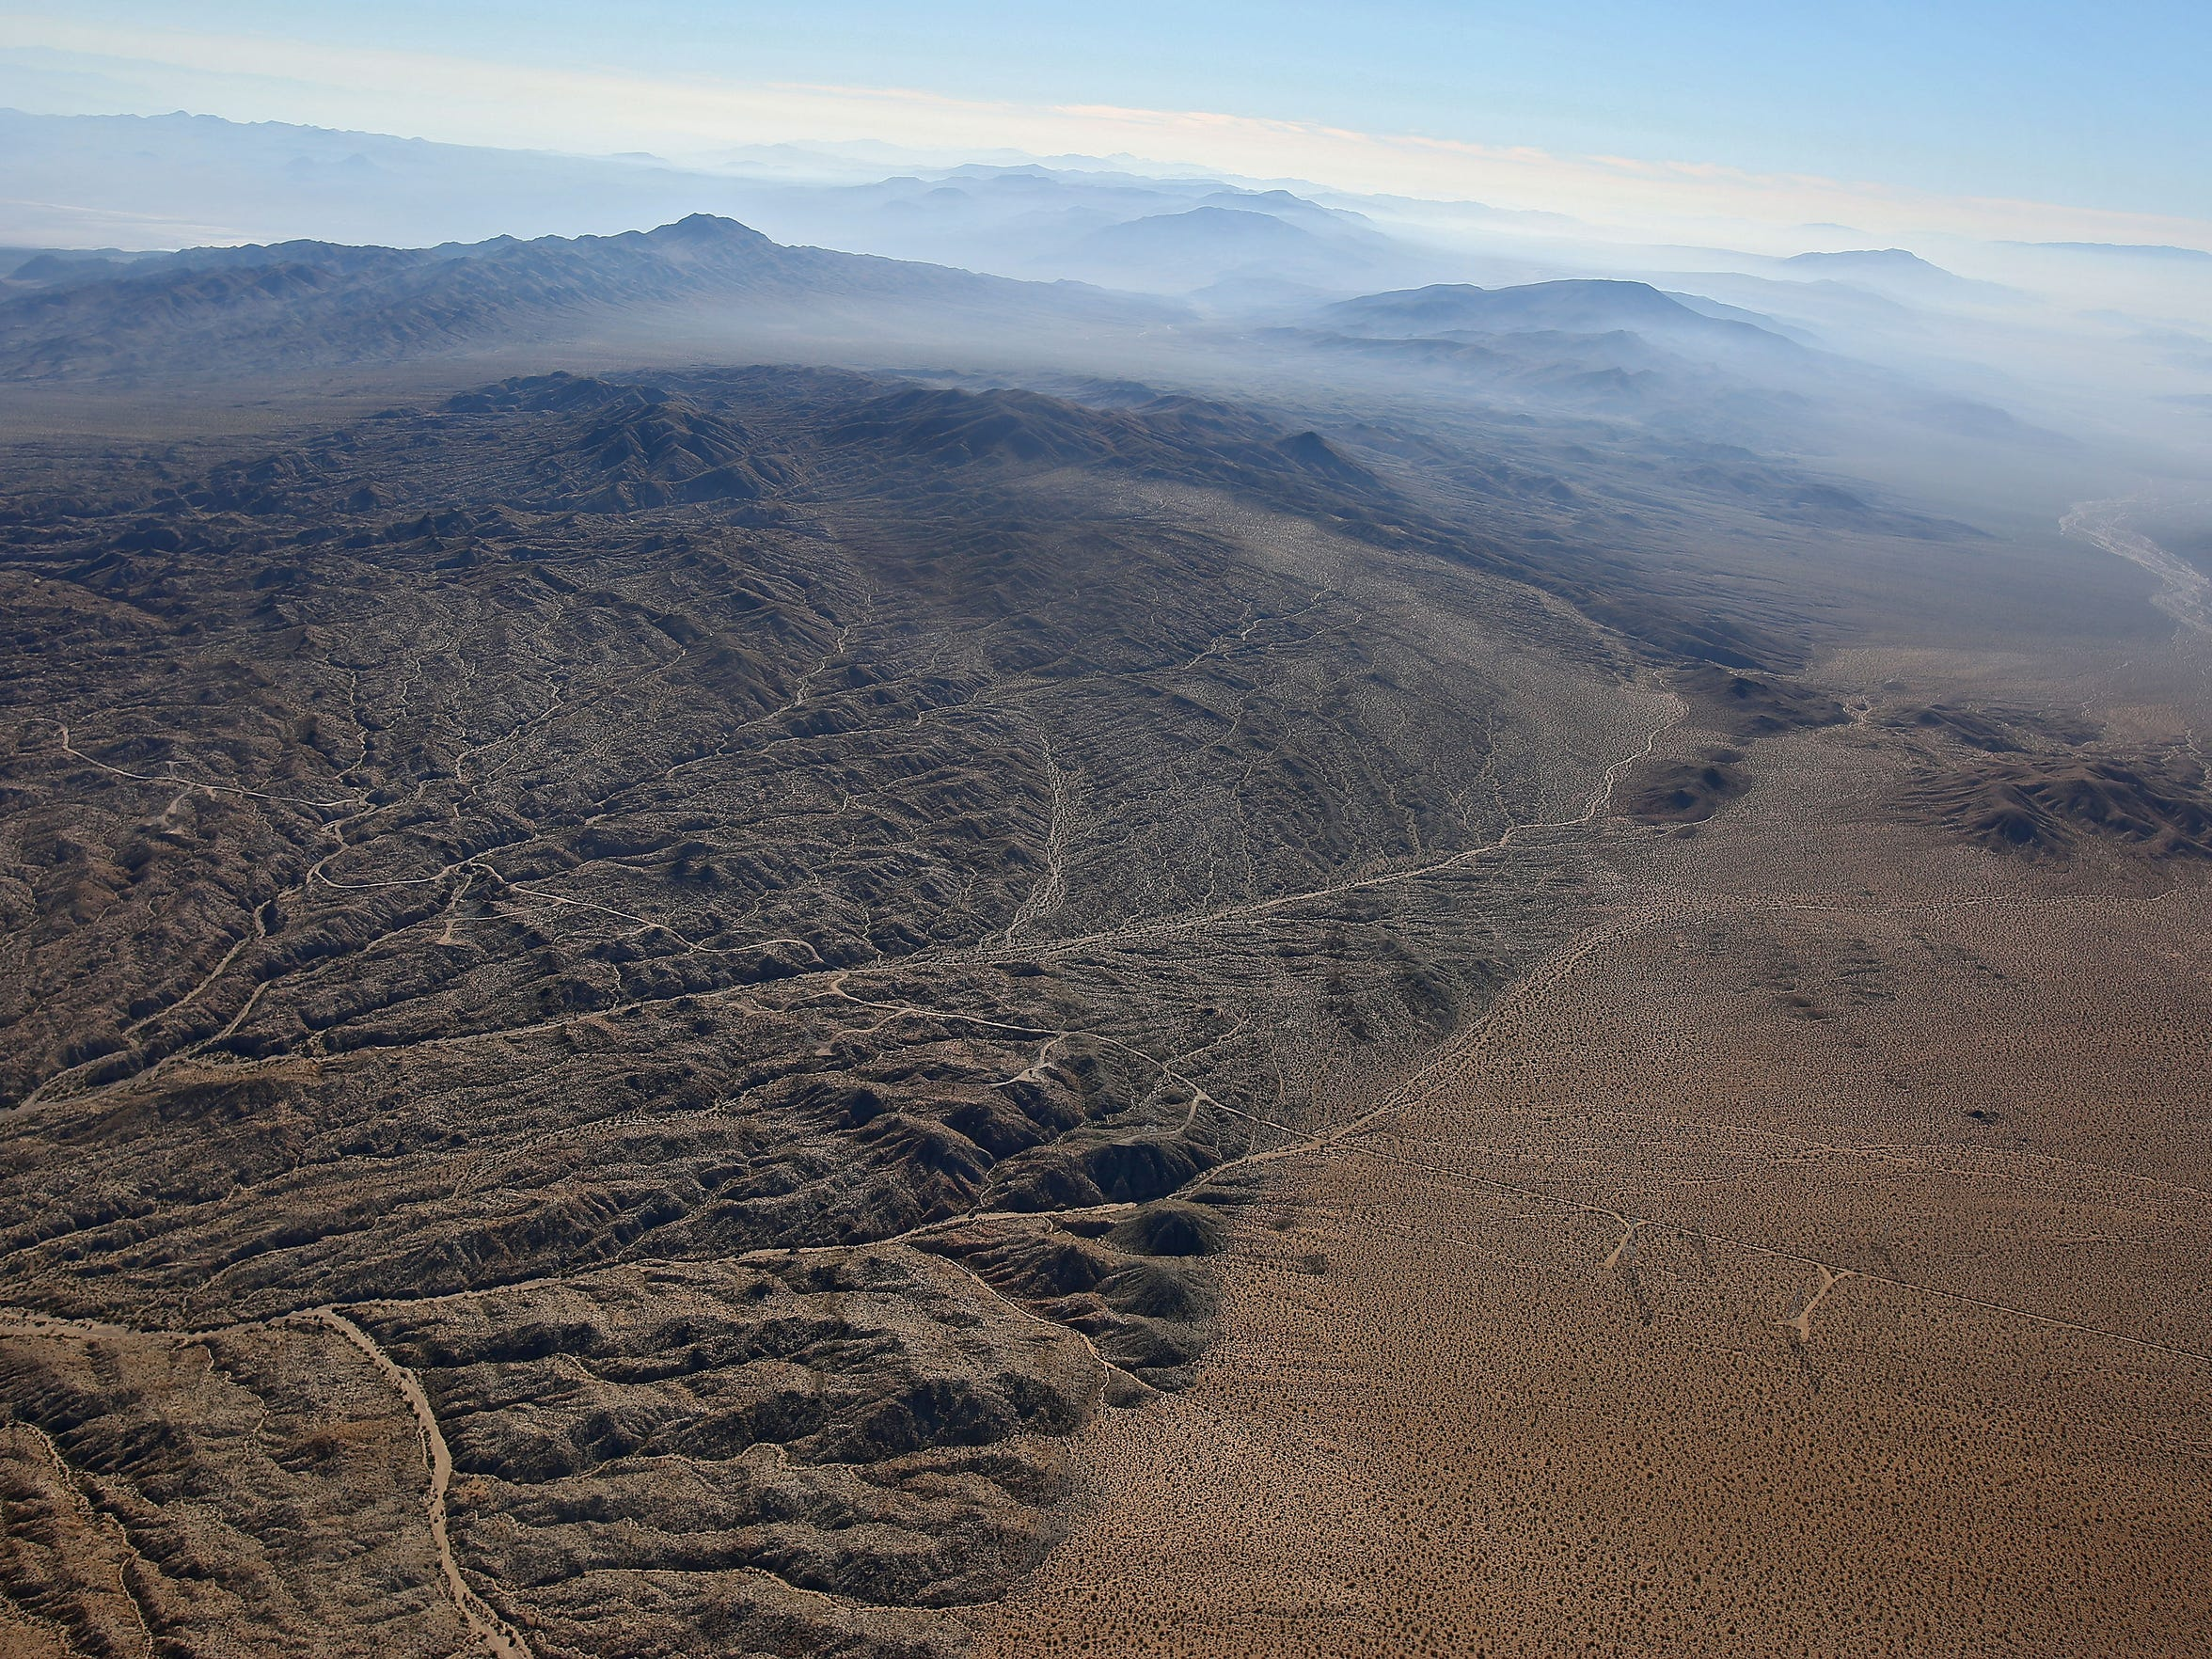 An aerial photo of the Mojave Desert northeast of Twentynine Palms, California, taken on Oct. 20, 2014.